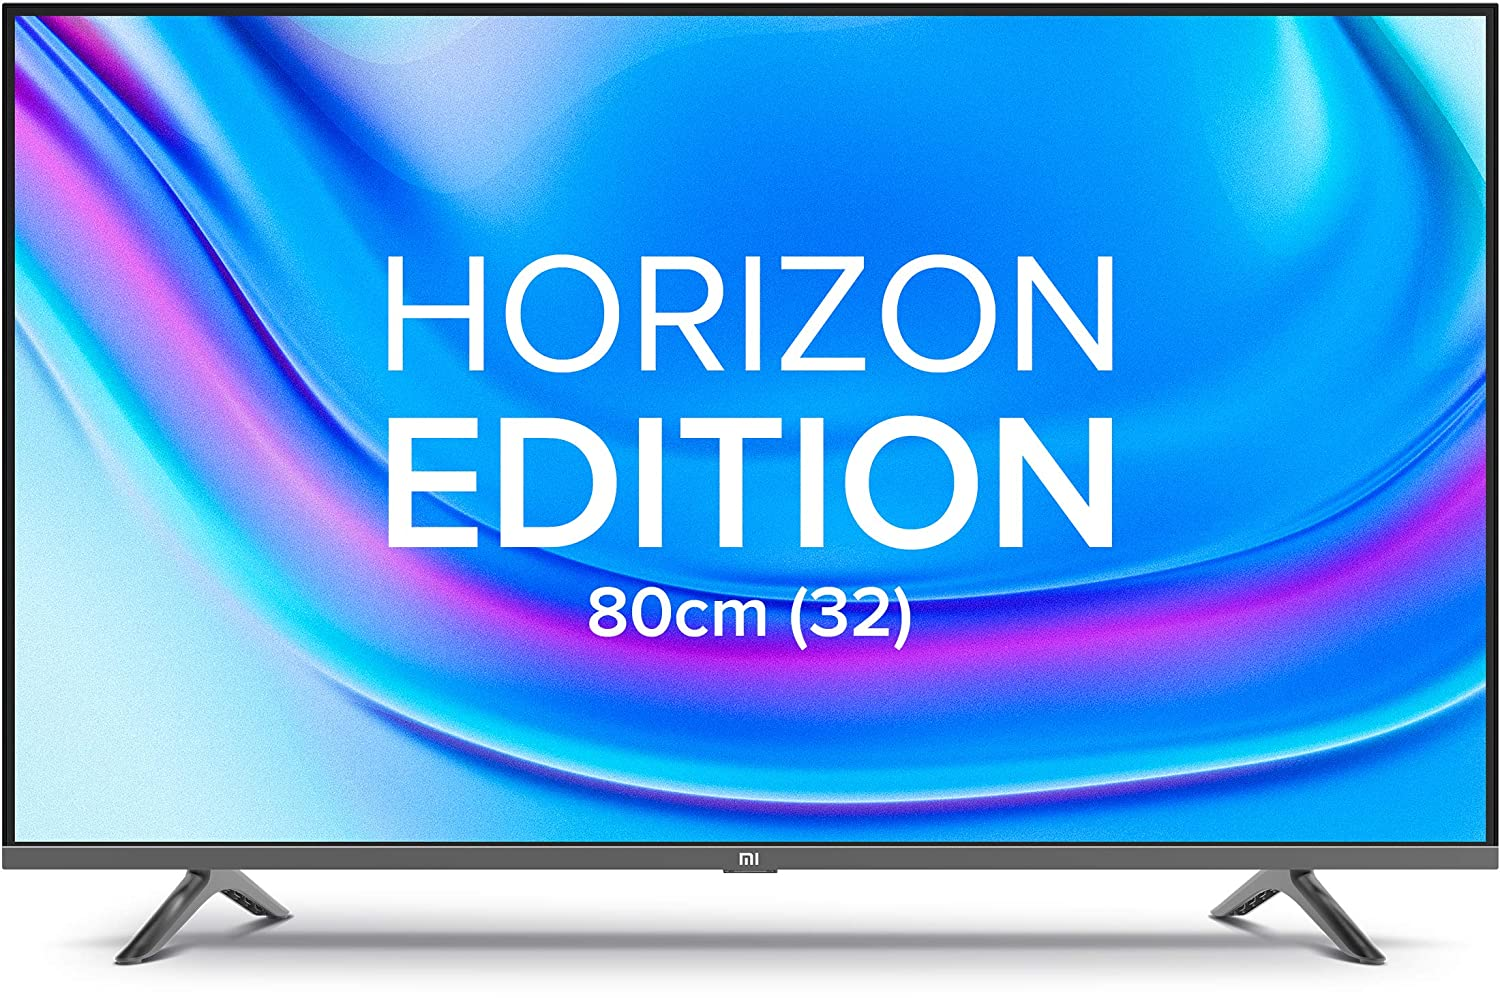 MI TV 4A Horizon Edition (32 inches) HD Ready Android LED TV